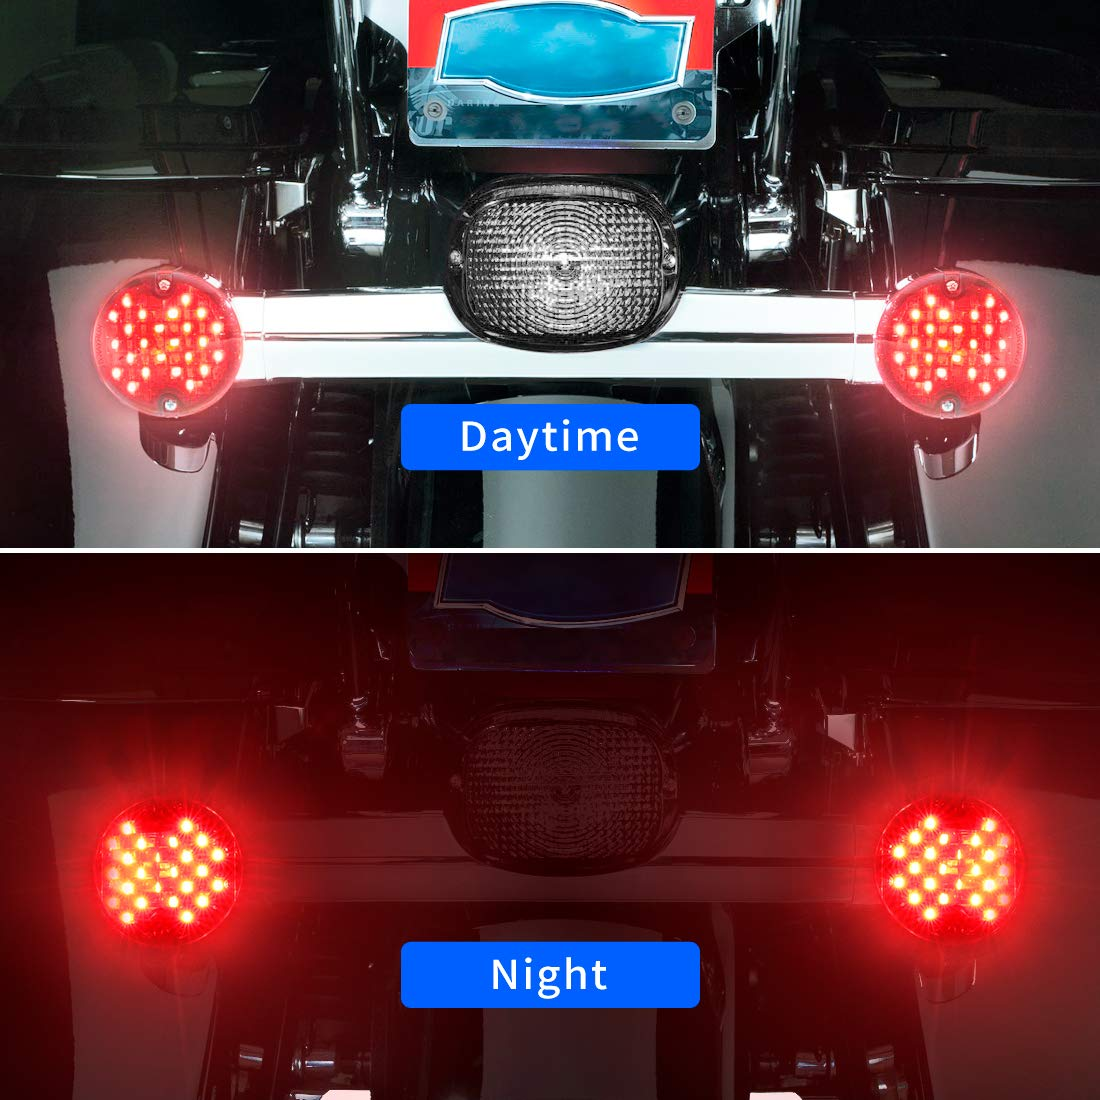 SUPAREE 2 Front LED Turn Signal Kit with White Running Lights for Harley Davidson Motorcycles 1157 Base